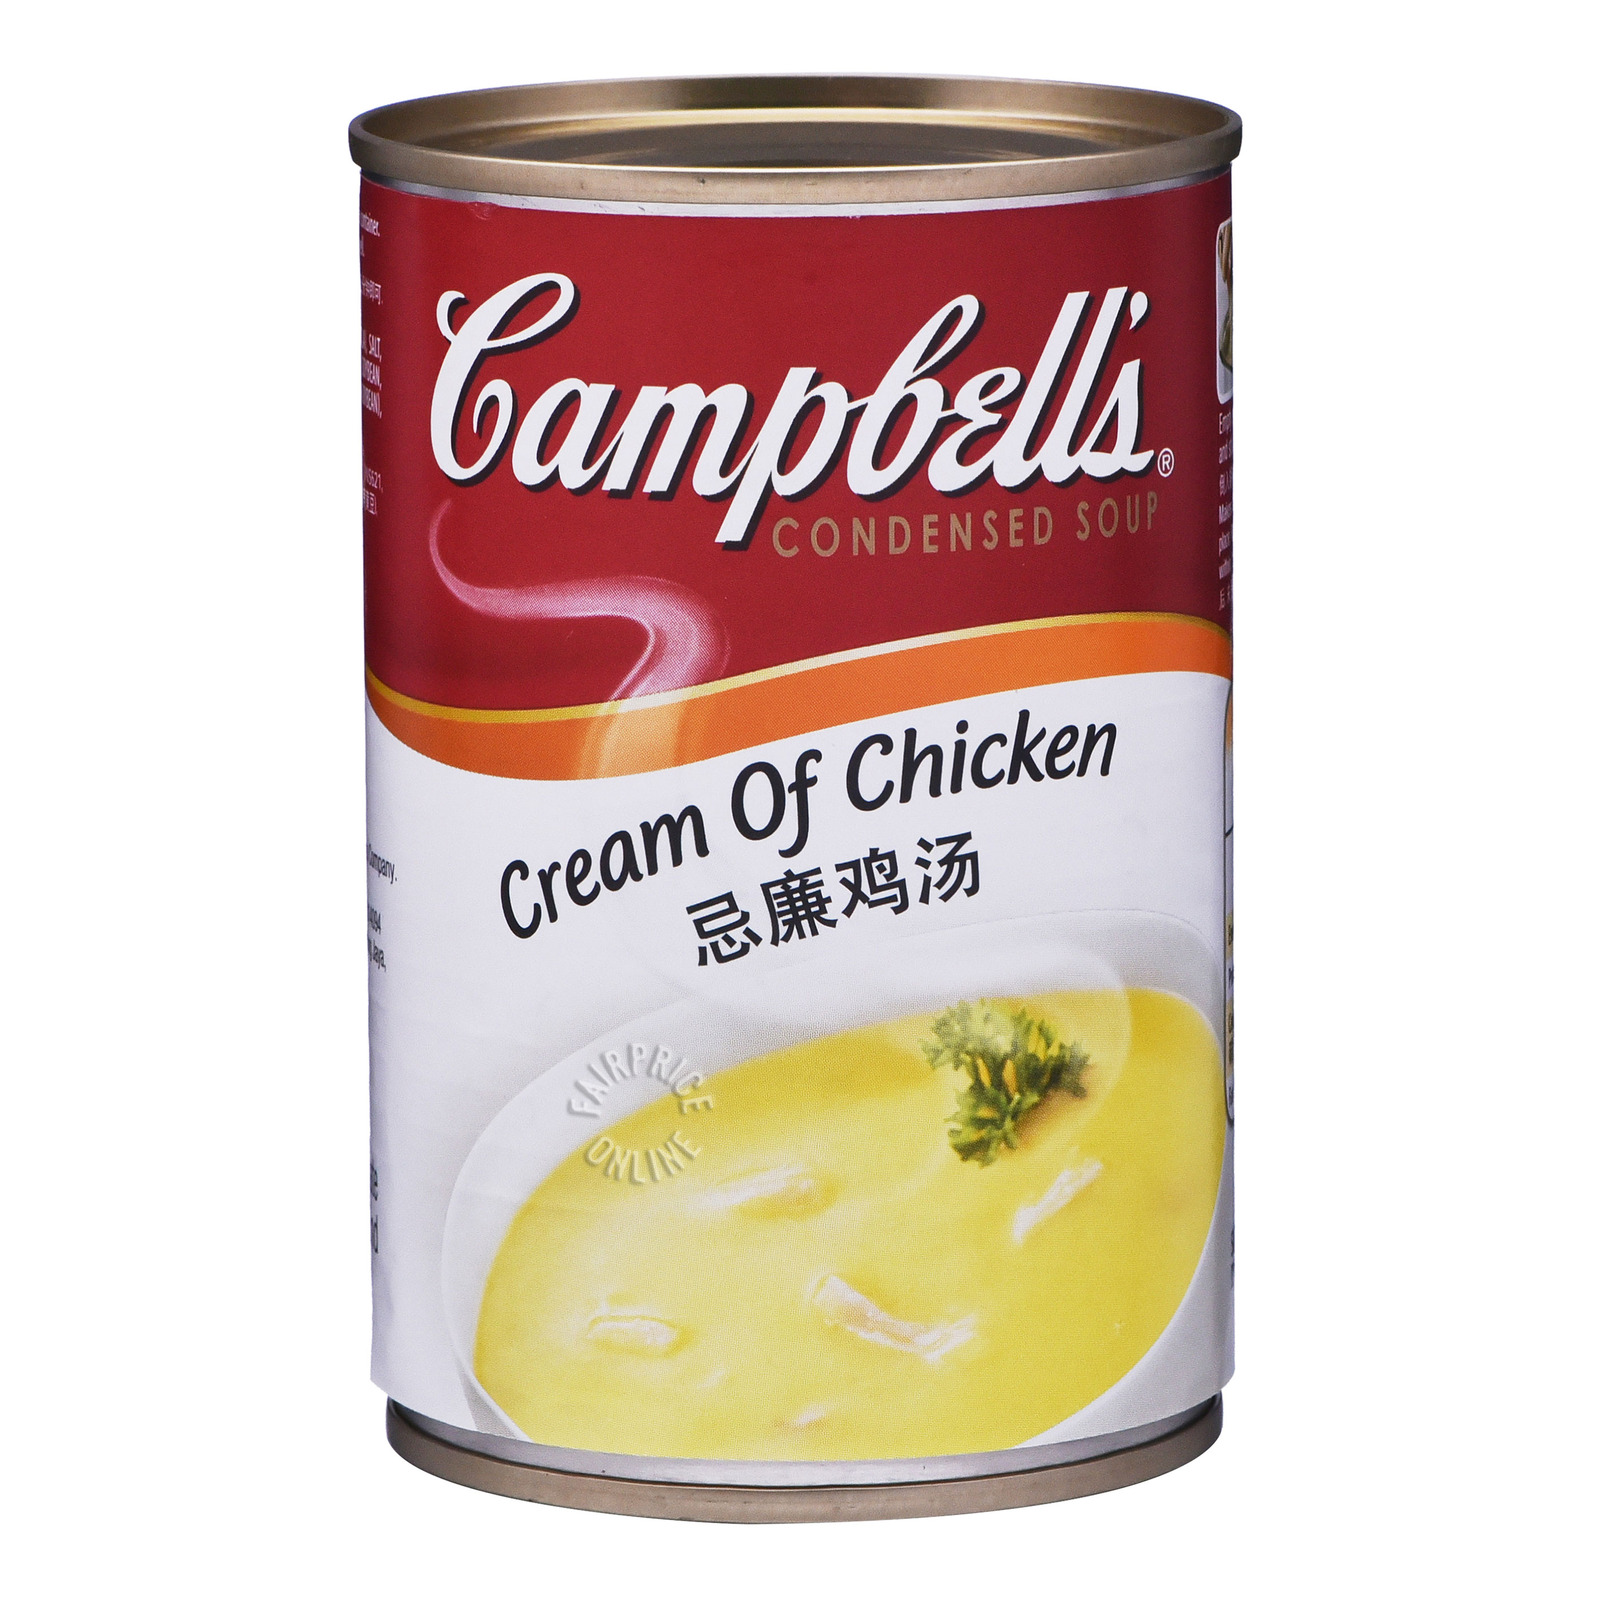 Campbell's Condensed Soup - Cream of Chicken